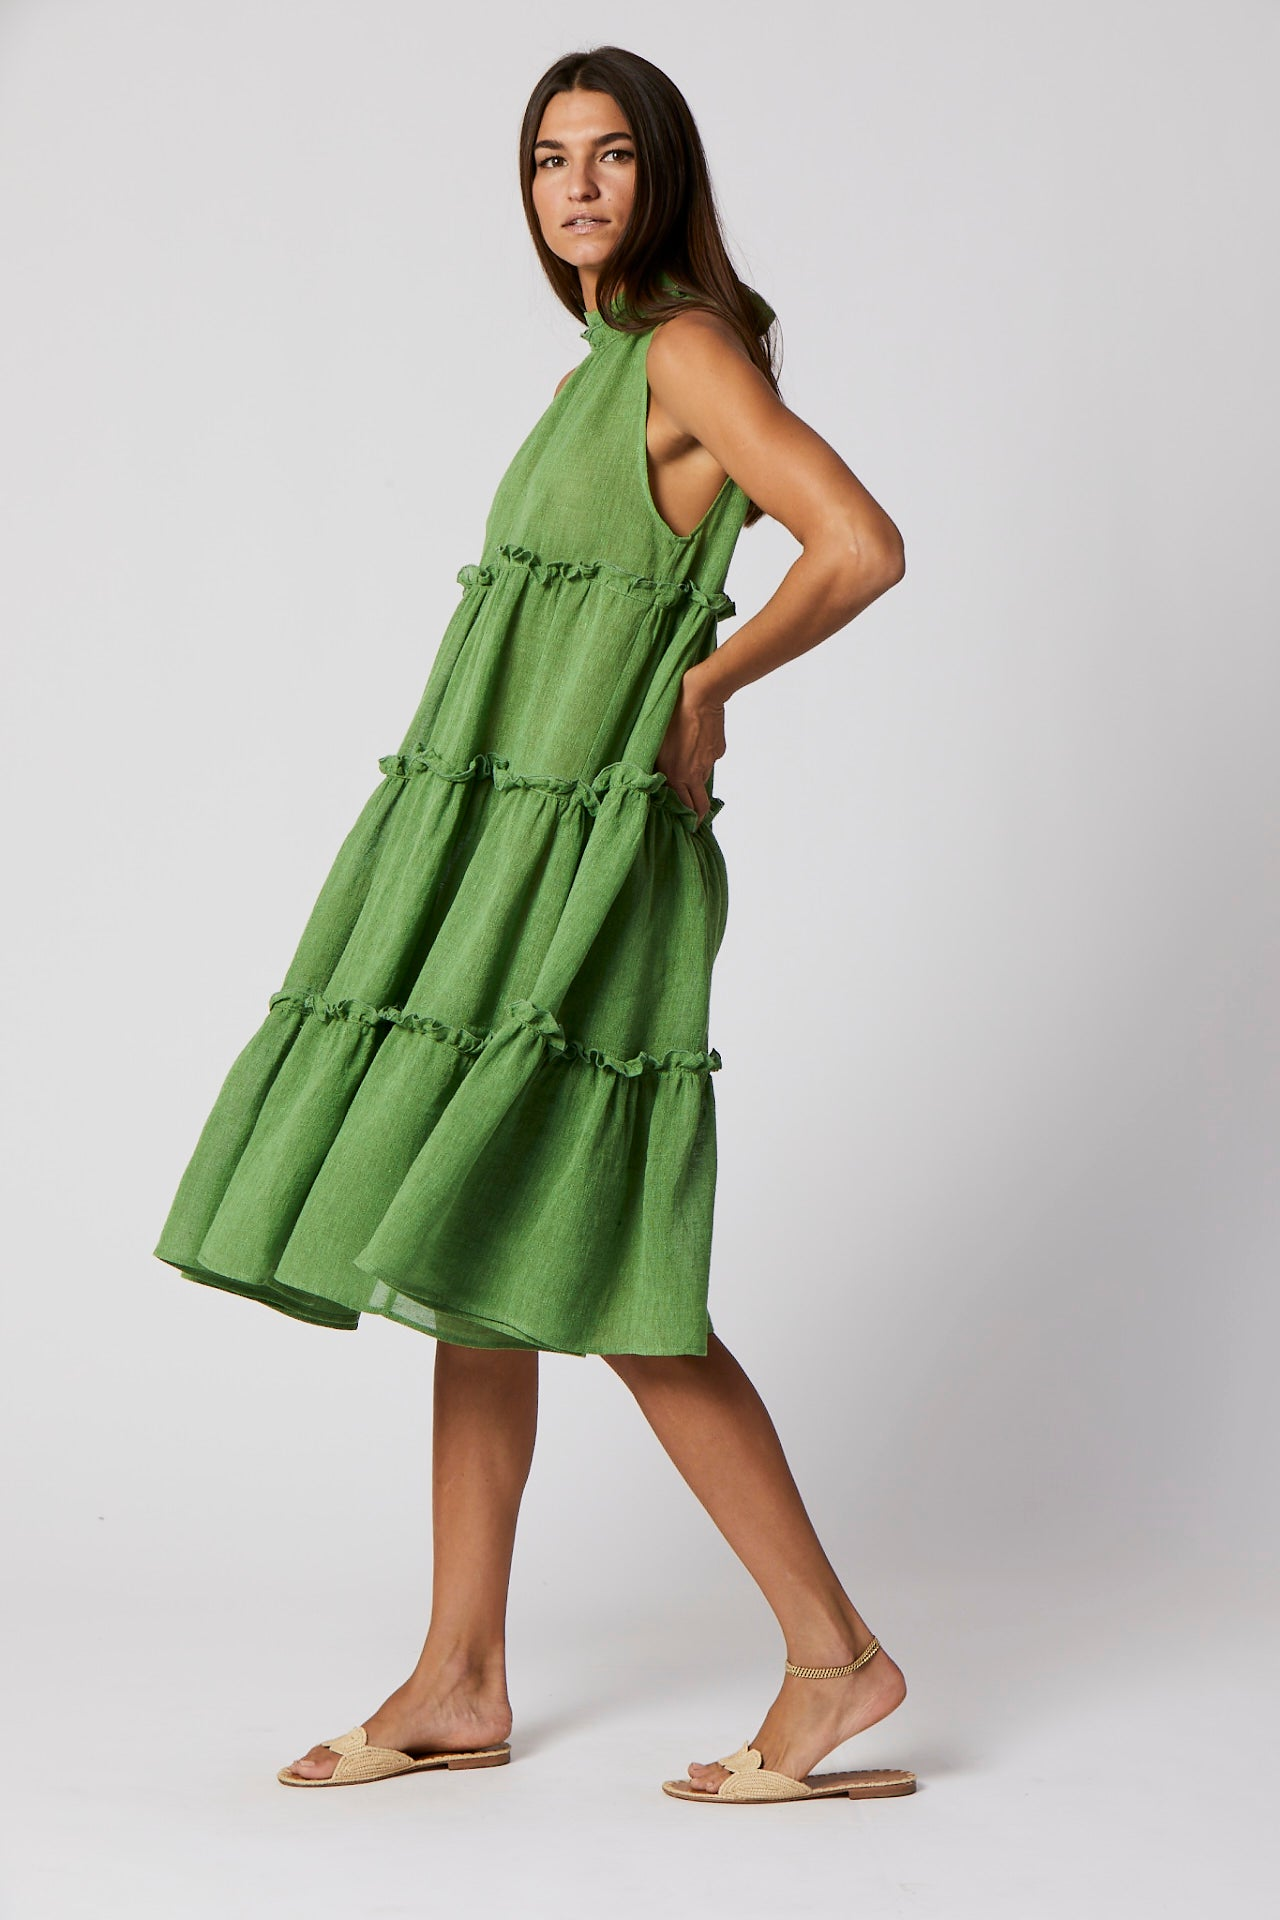 ERICA GREEN ORGANIC GAUZE MIDI DRESS